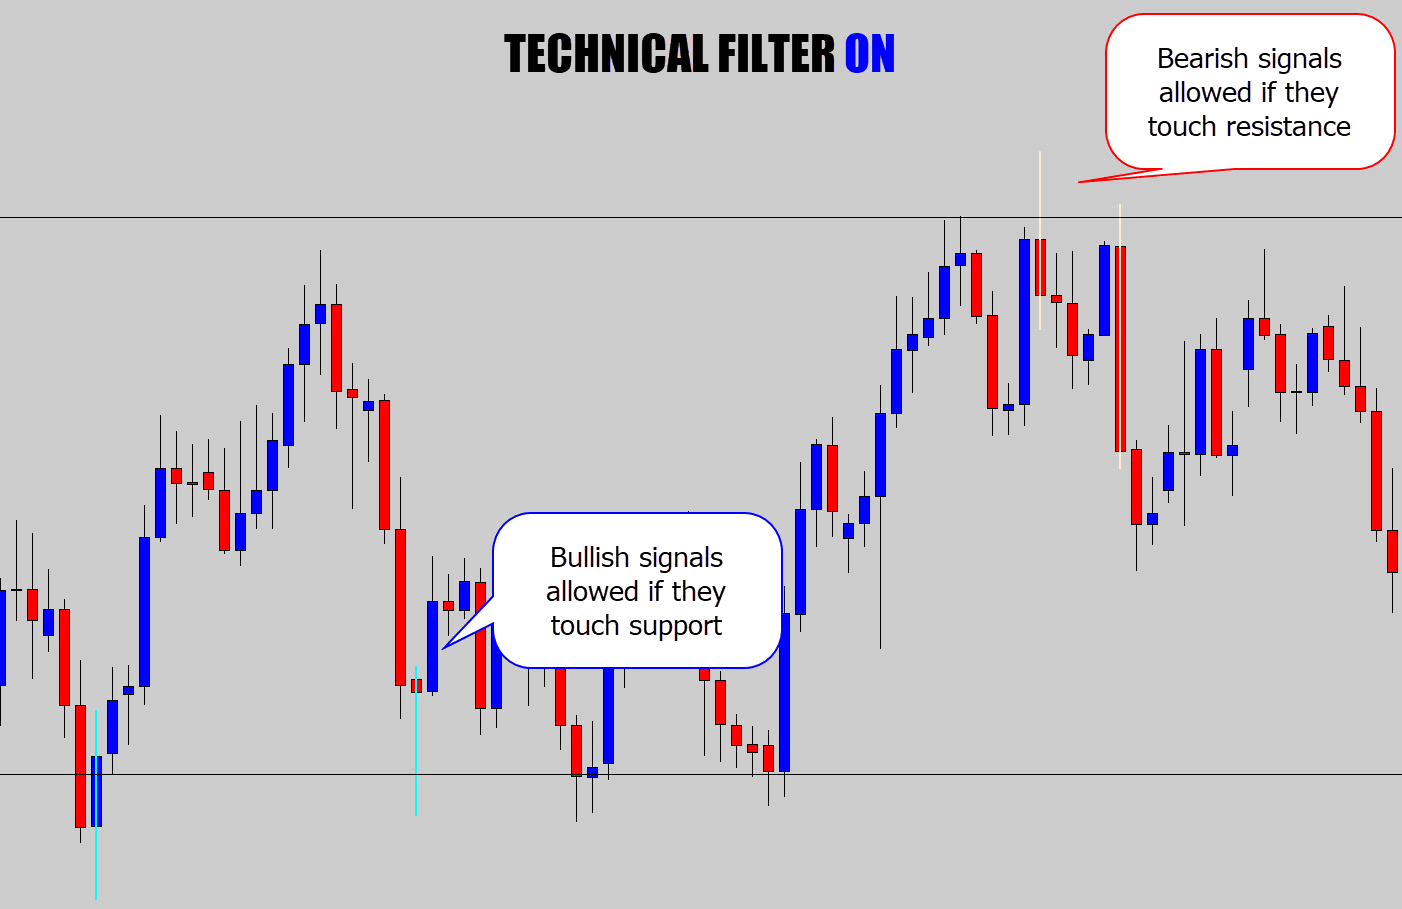 technical filter on in range